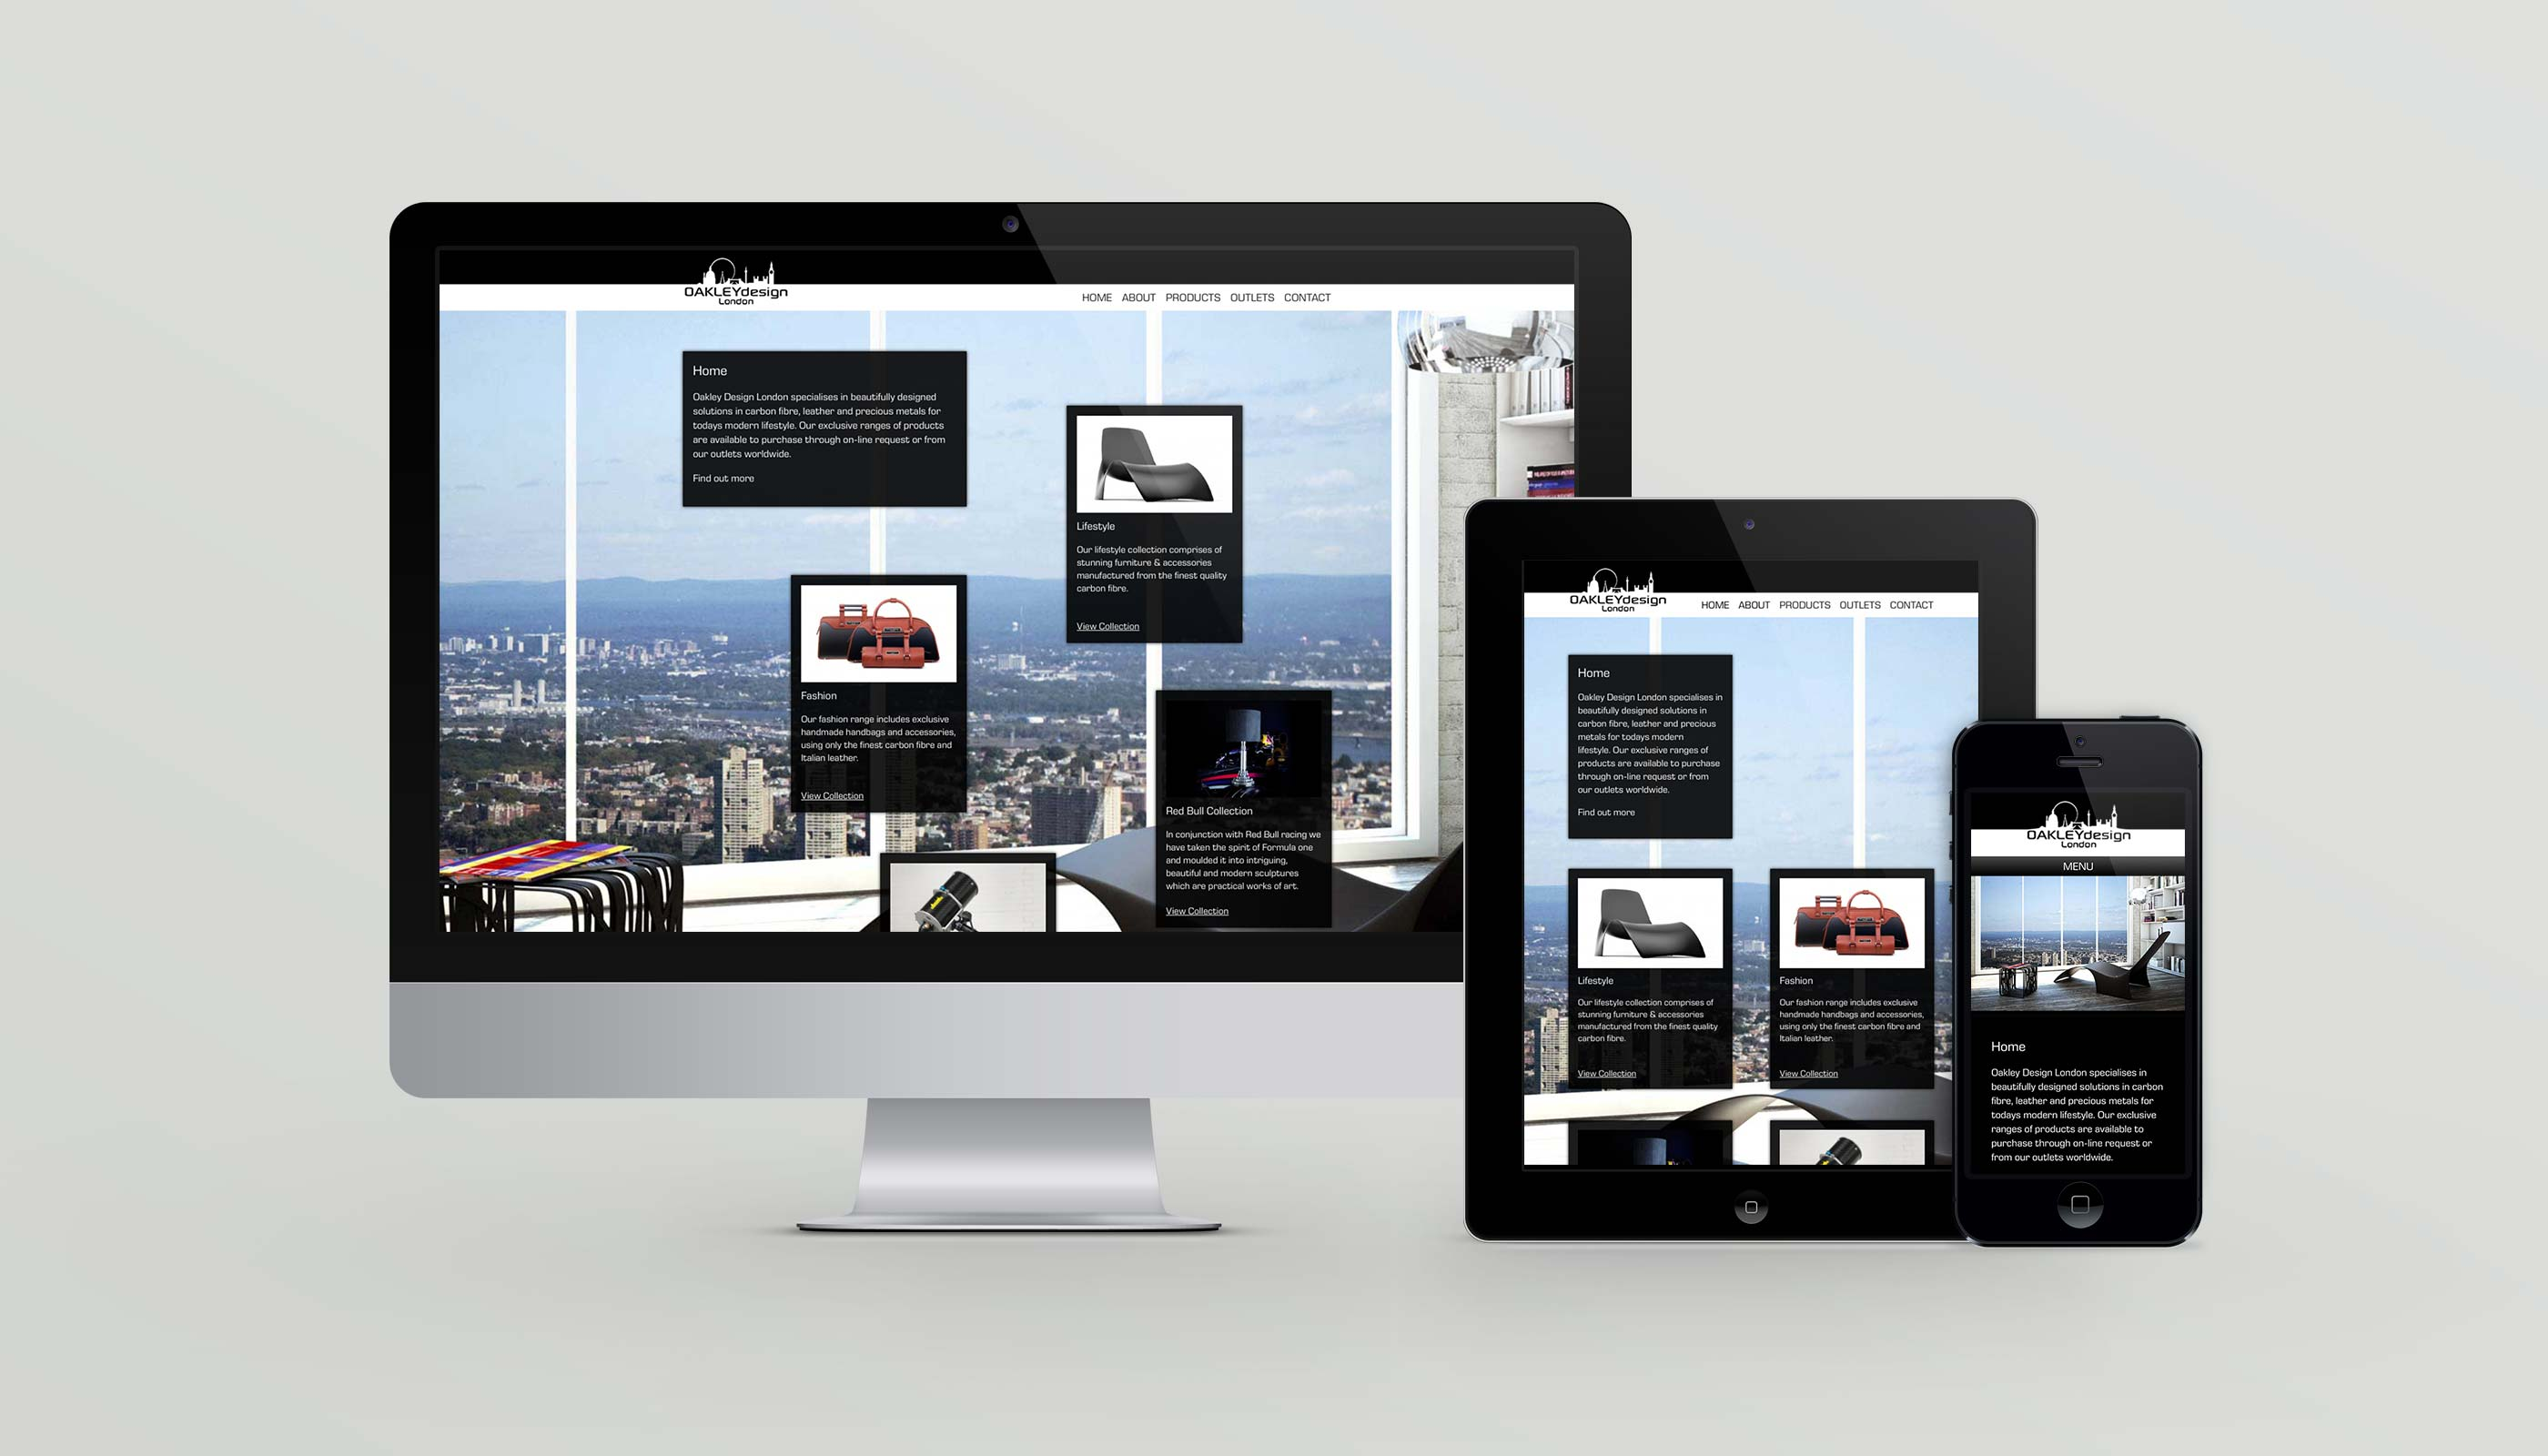 8df70f9ba1 Responsive website design for luxury goods retailer Oakley Design London.